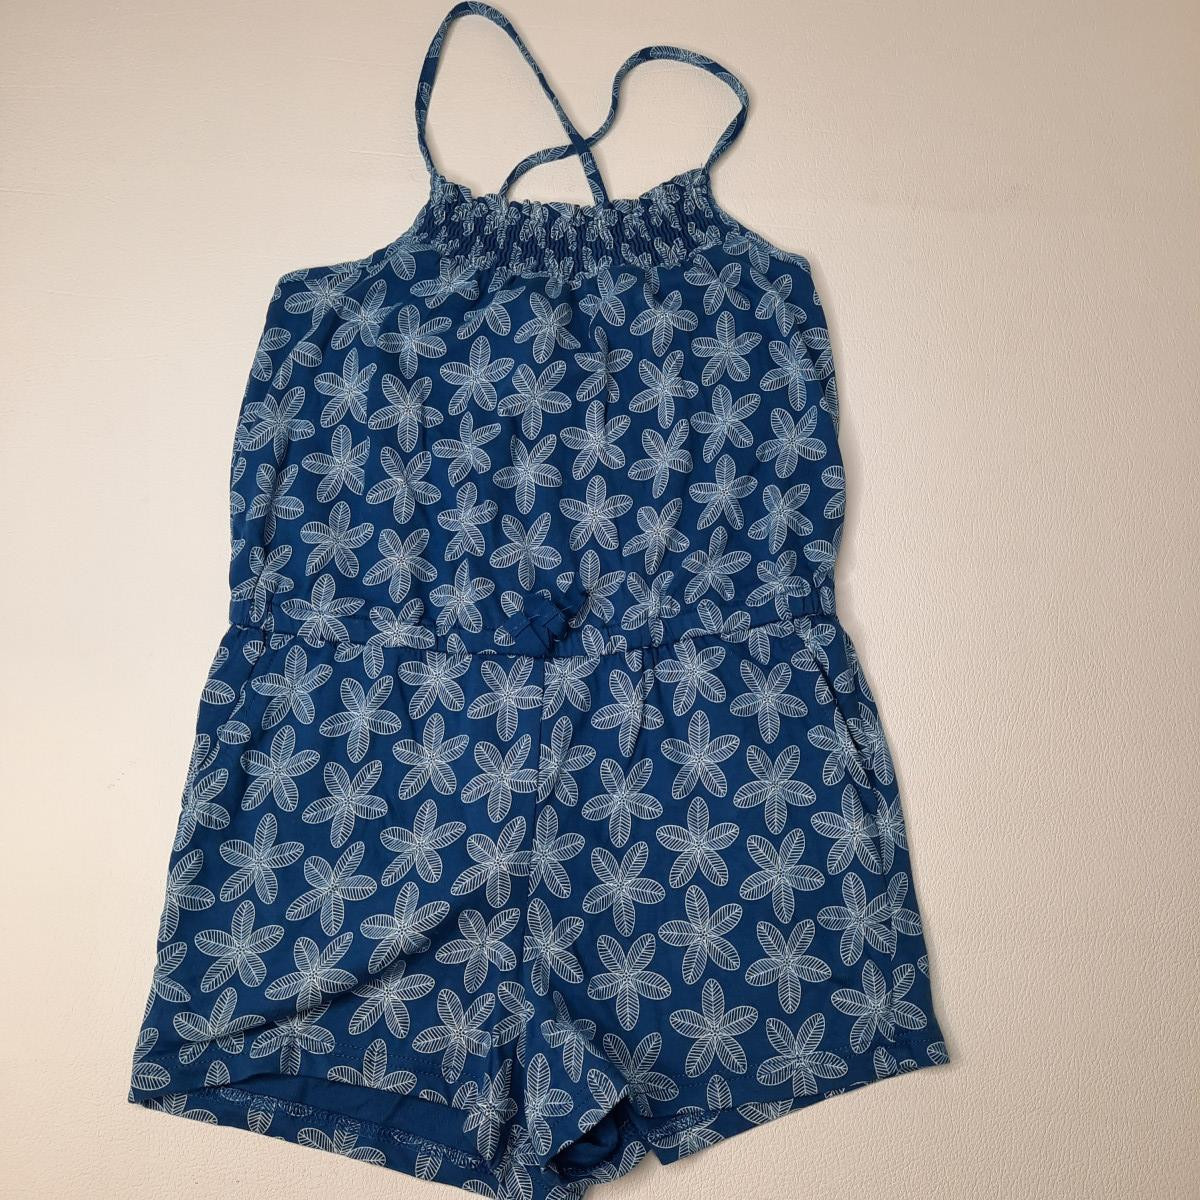 Combi short bleu à motif - photo 6